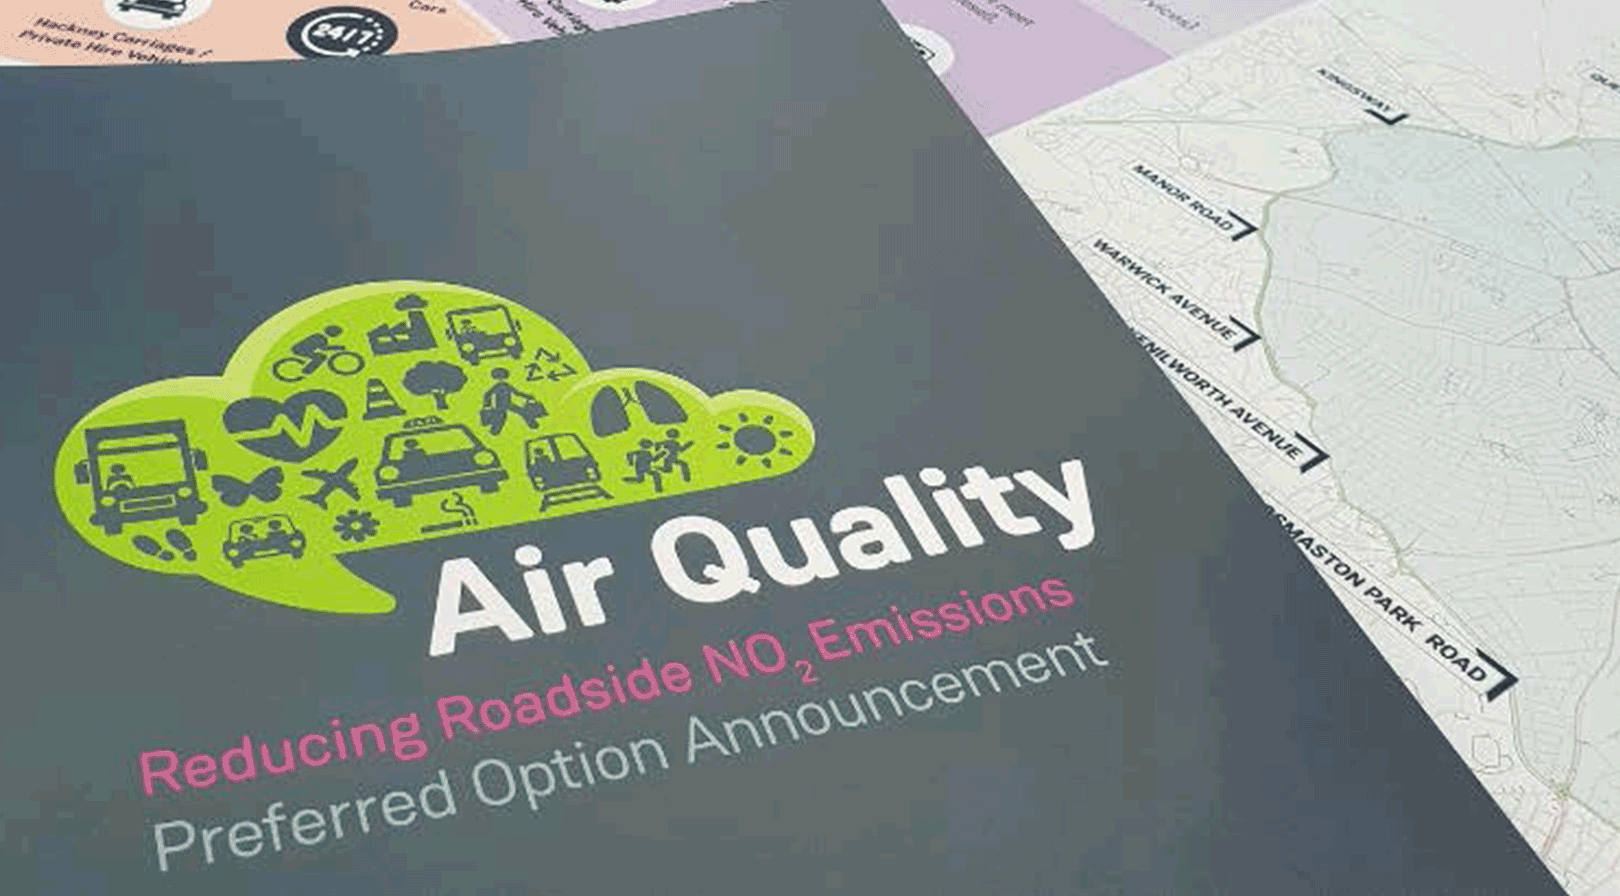 Derby Air Quality Assessment